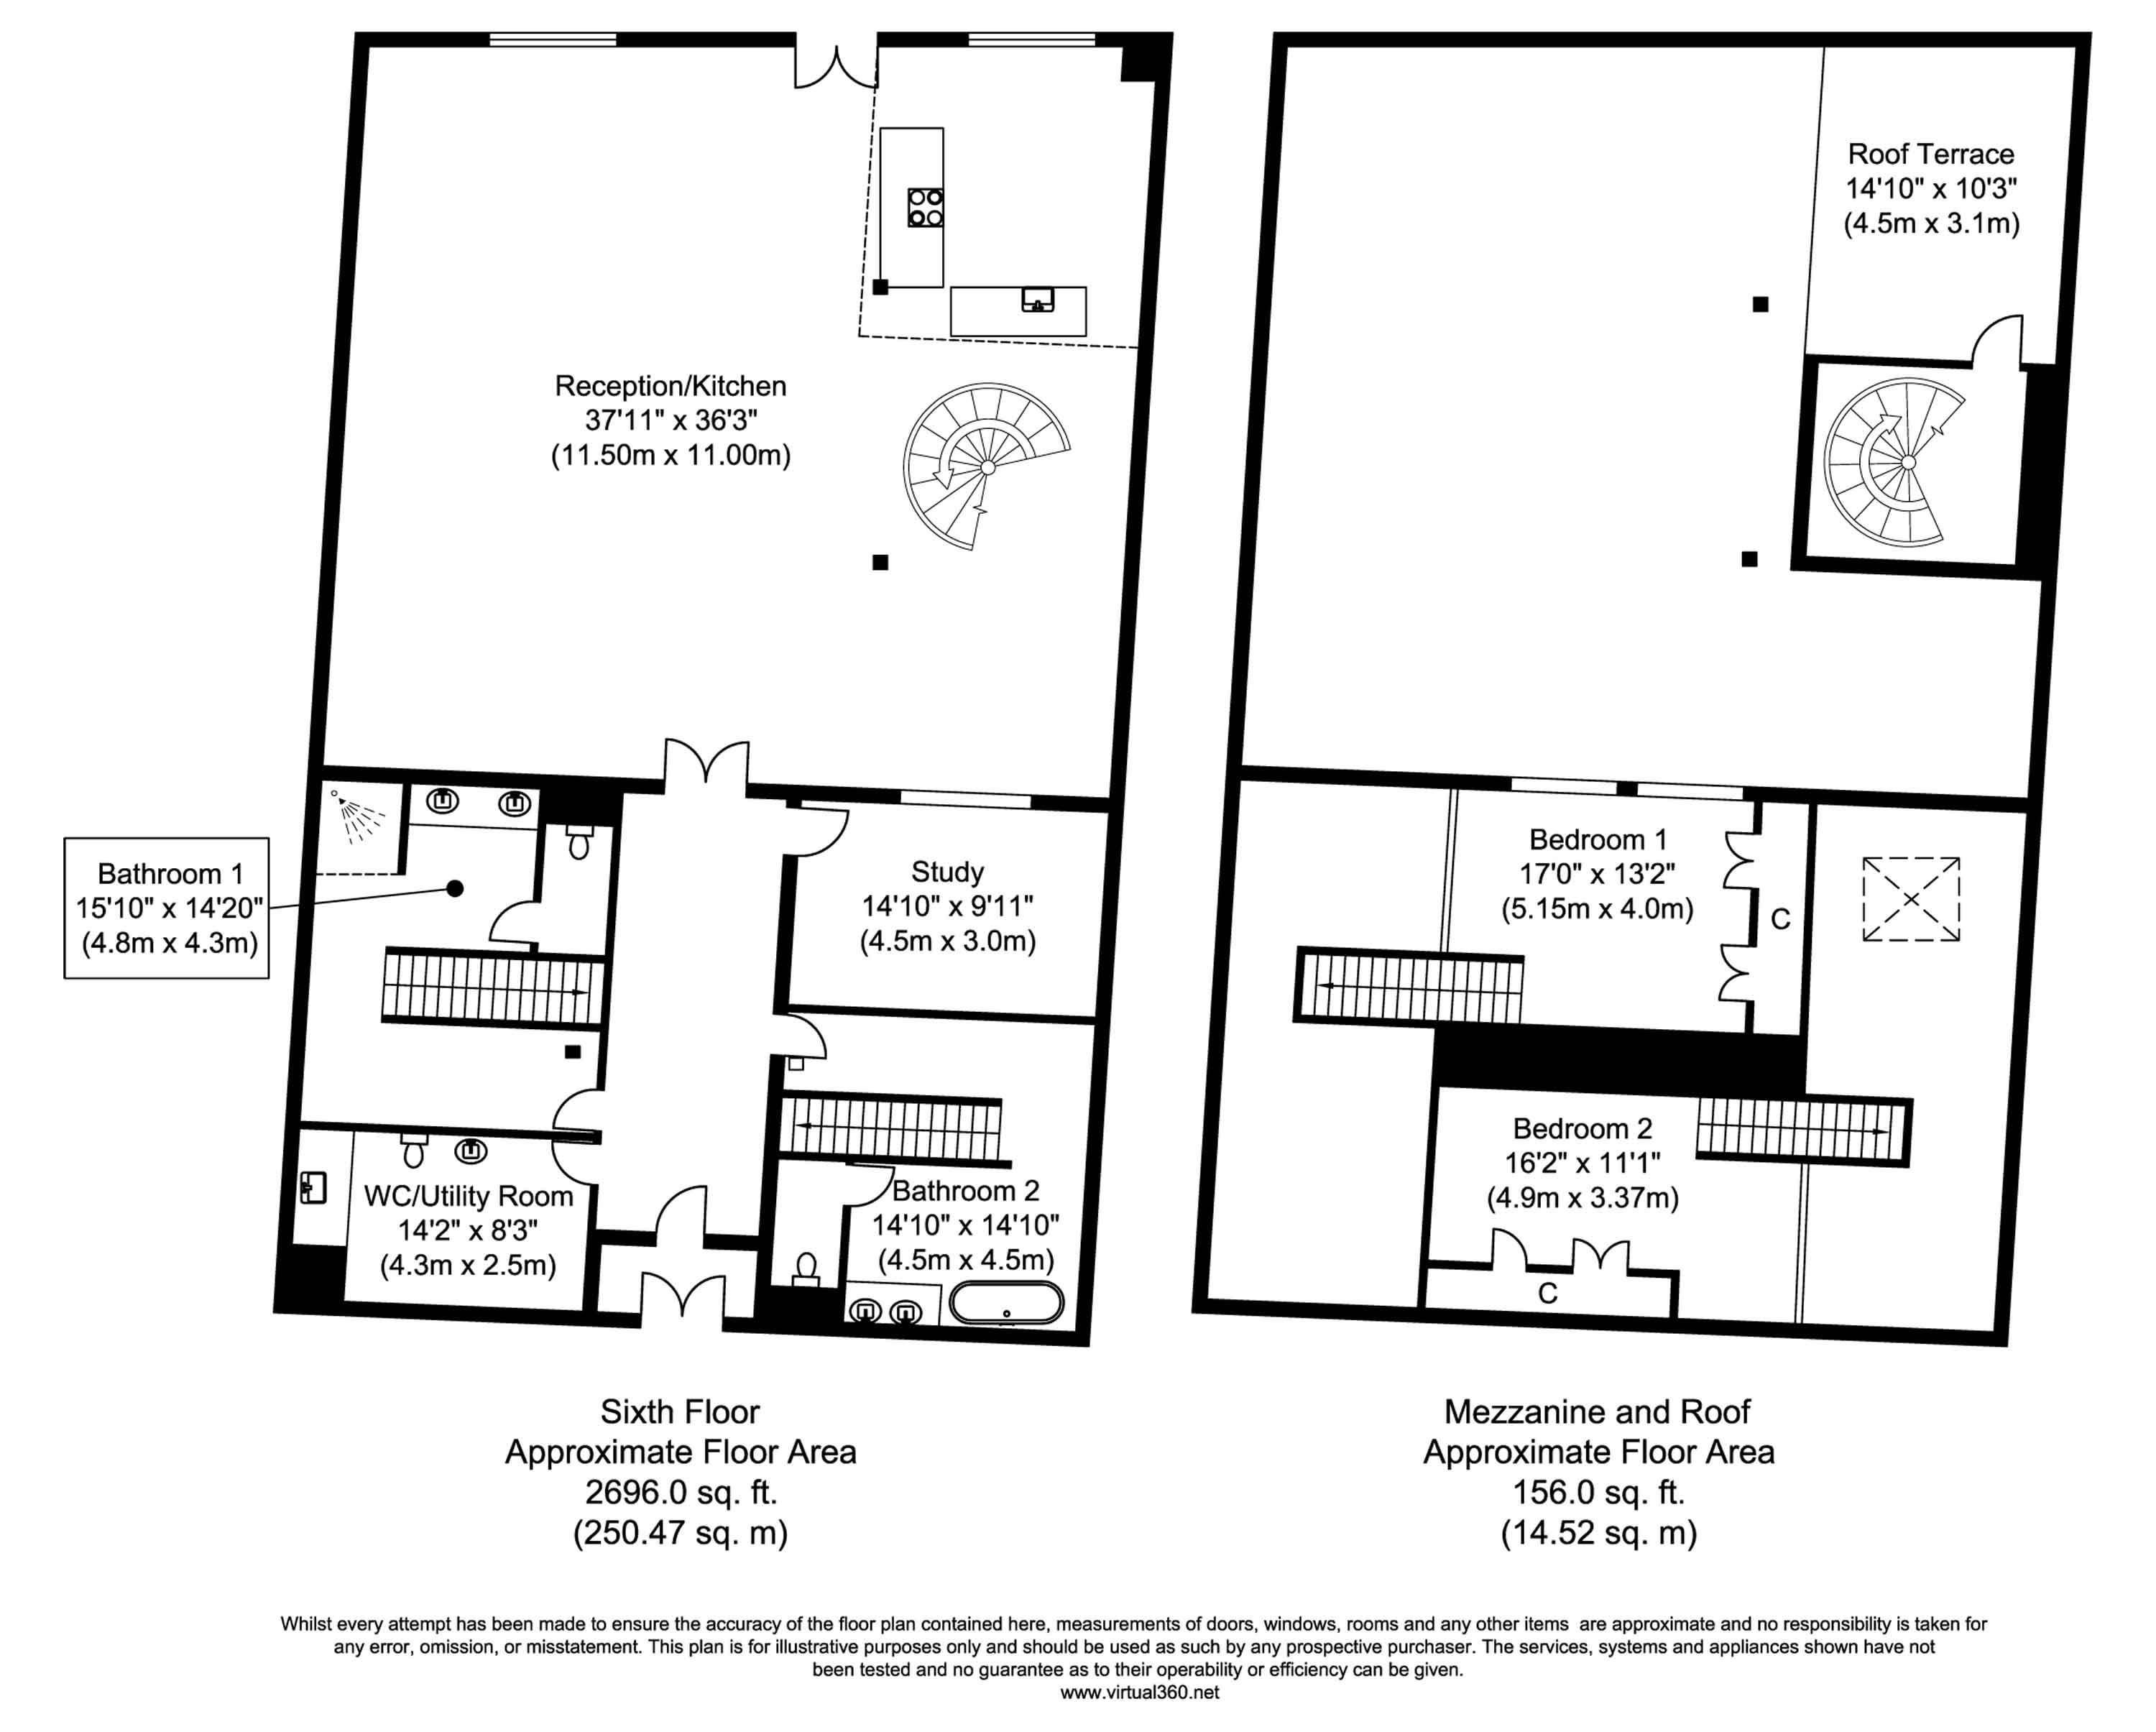 Floorplan for the property 2 bed Apartment to rent in Metropolitan Wharf - 1